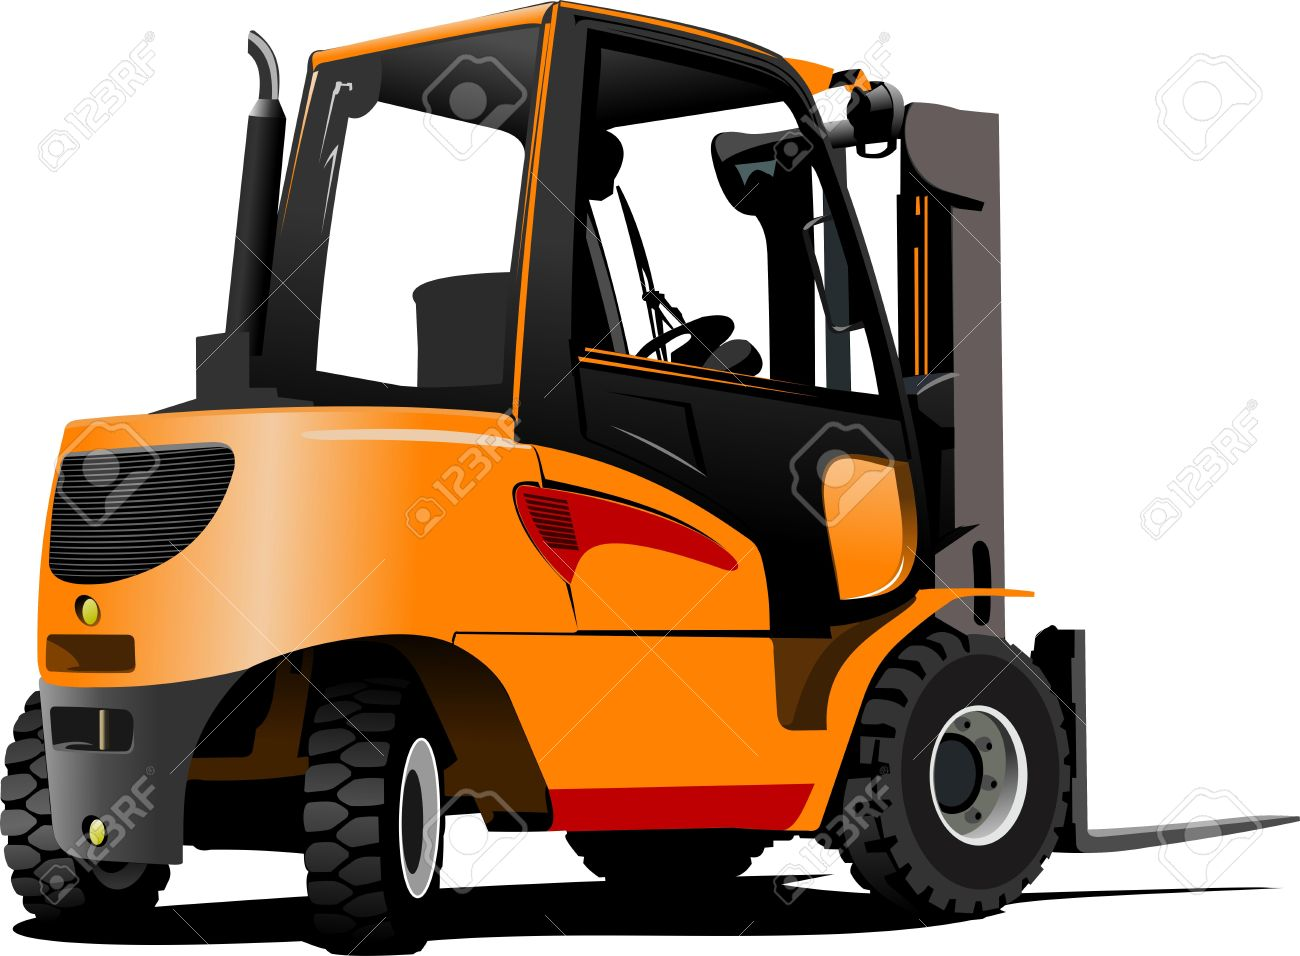 Lift Truck. Forklift. Illustration Royalty Free Cliparts, Vectors.